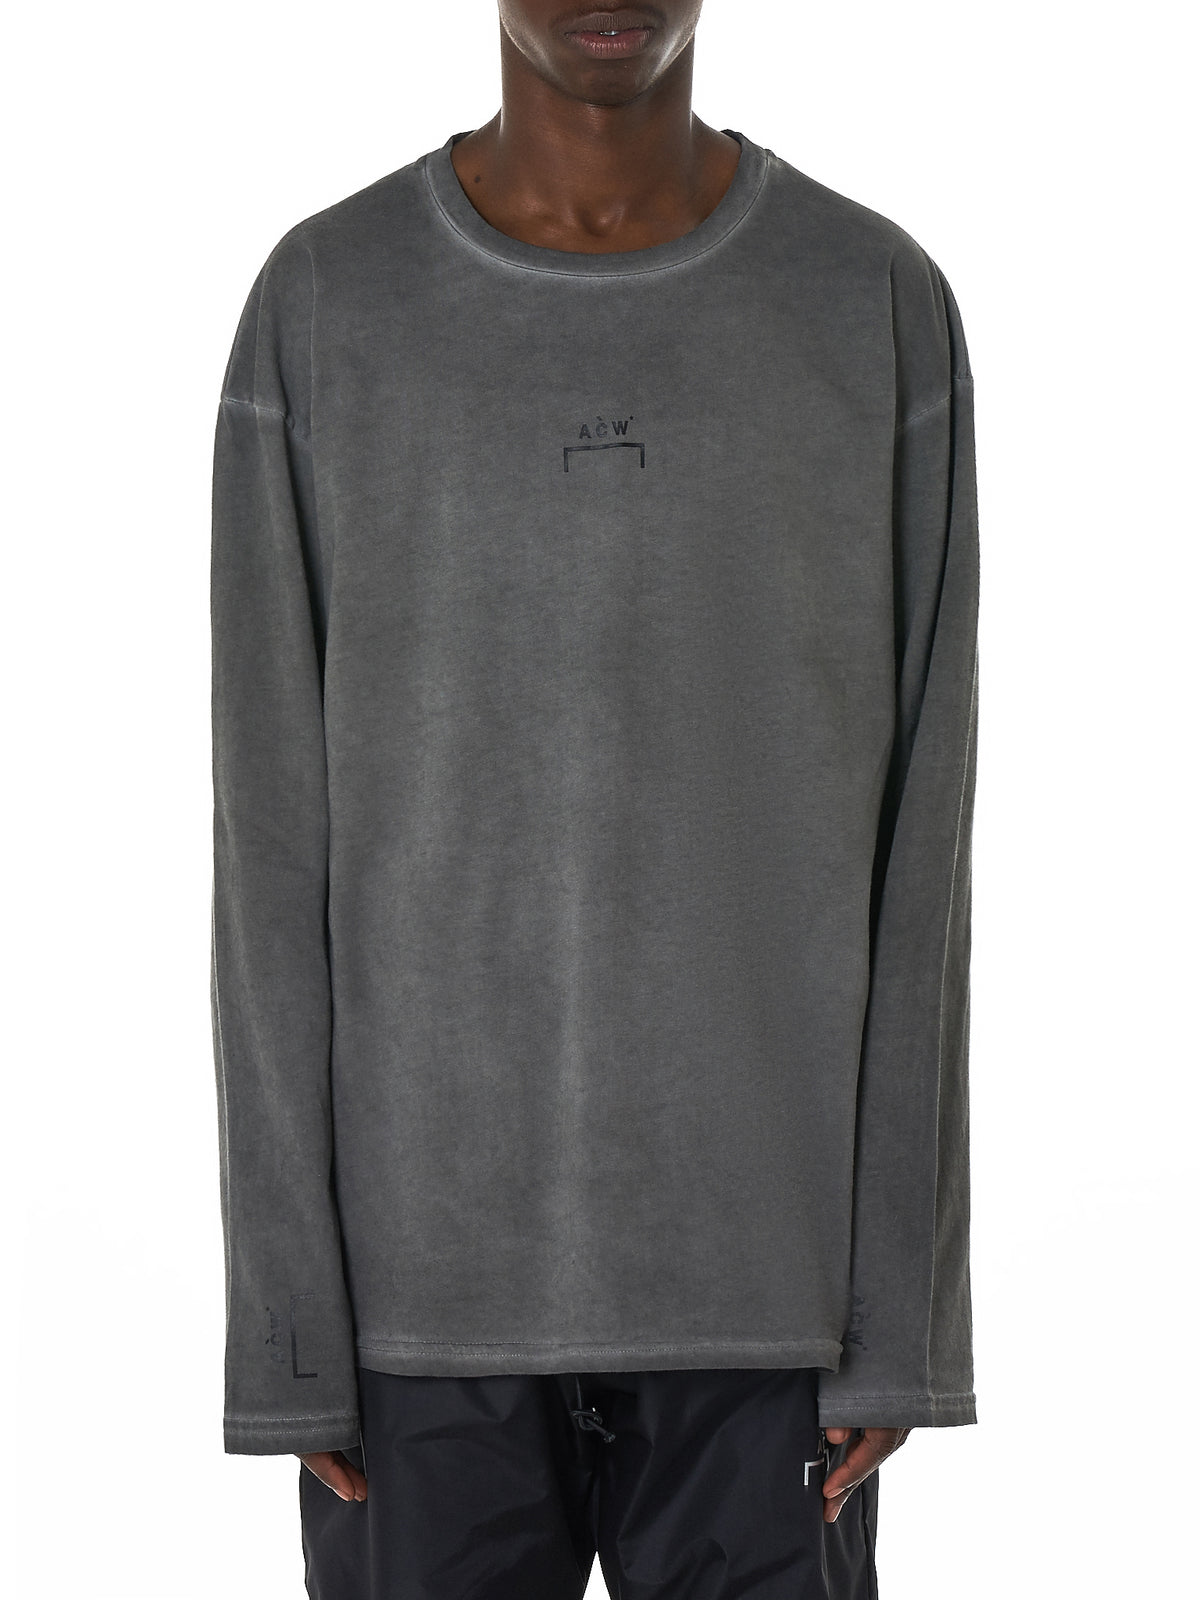 A Cold Wall* Long Sleeve Tee Shirt - Hlorenzo Front